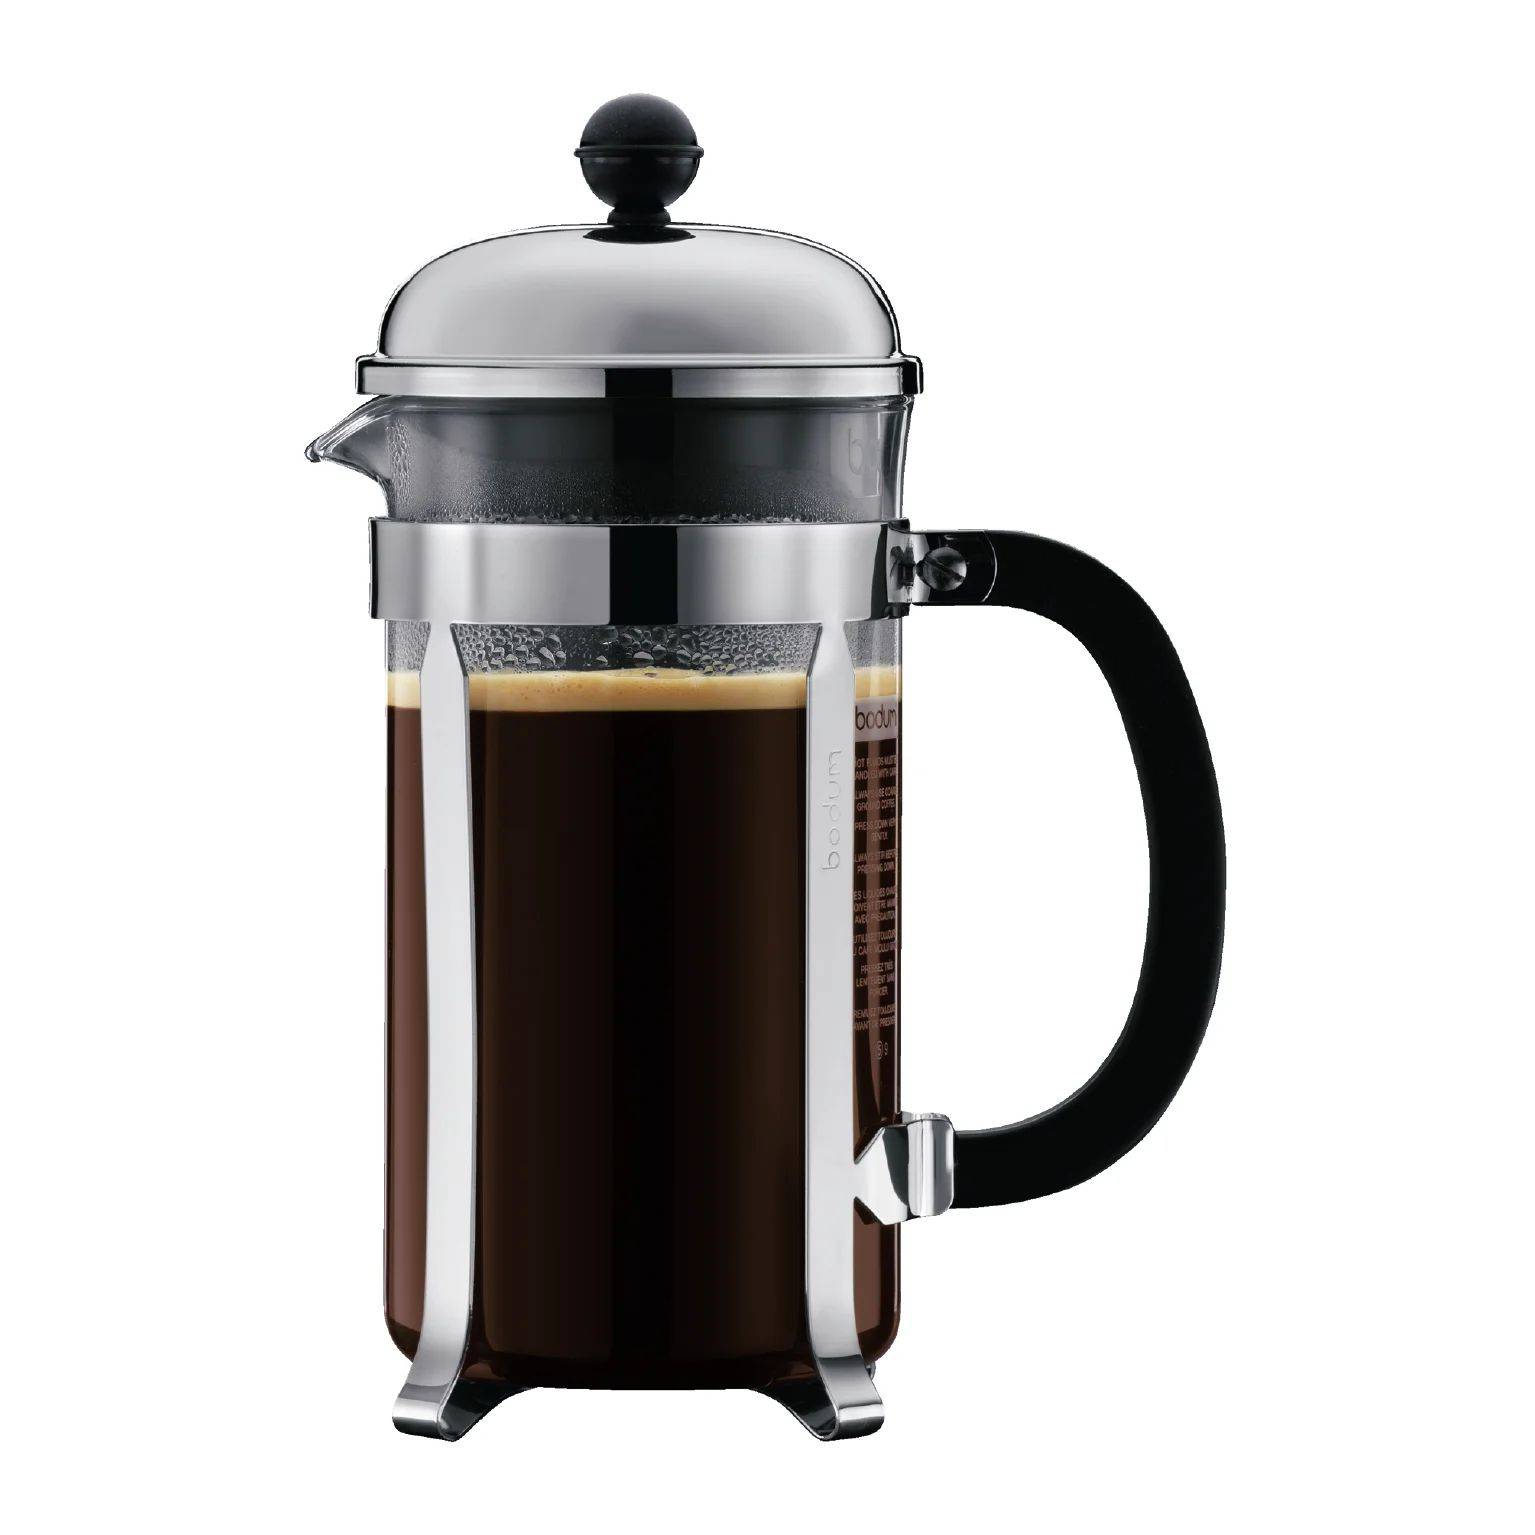 Bodum chambord french press coffee maker reviews wayfair